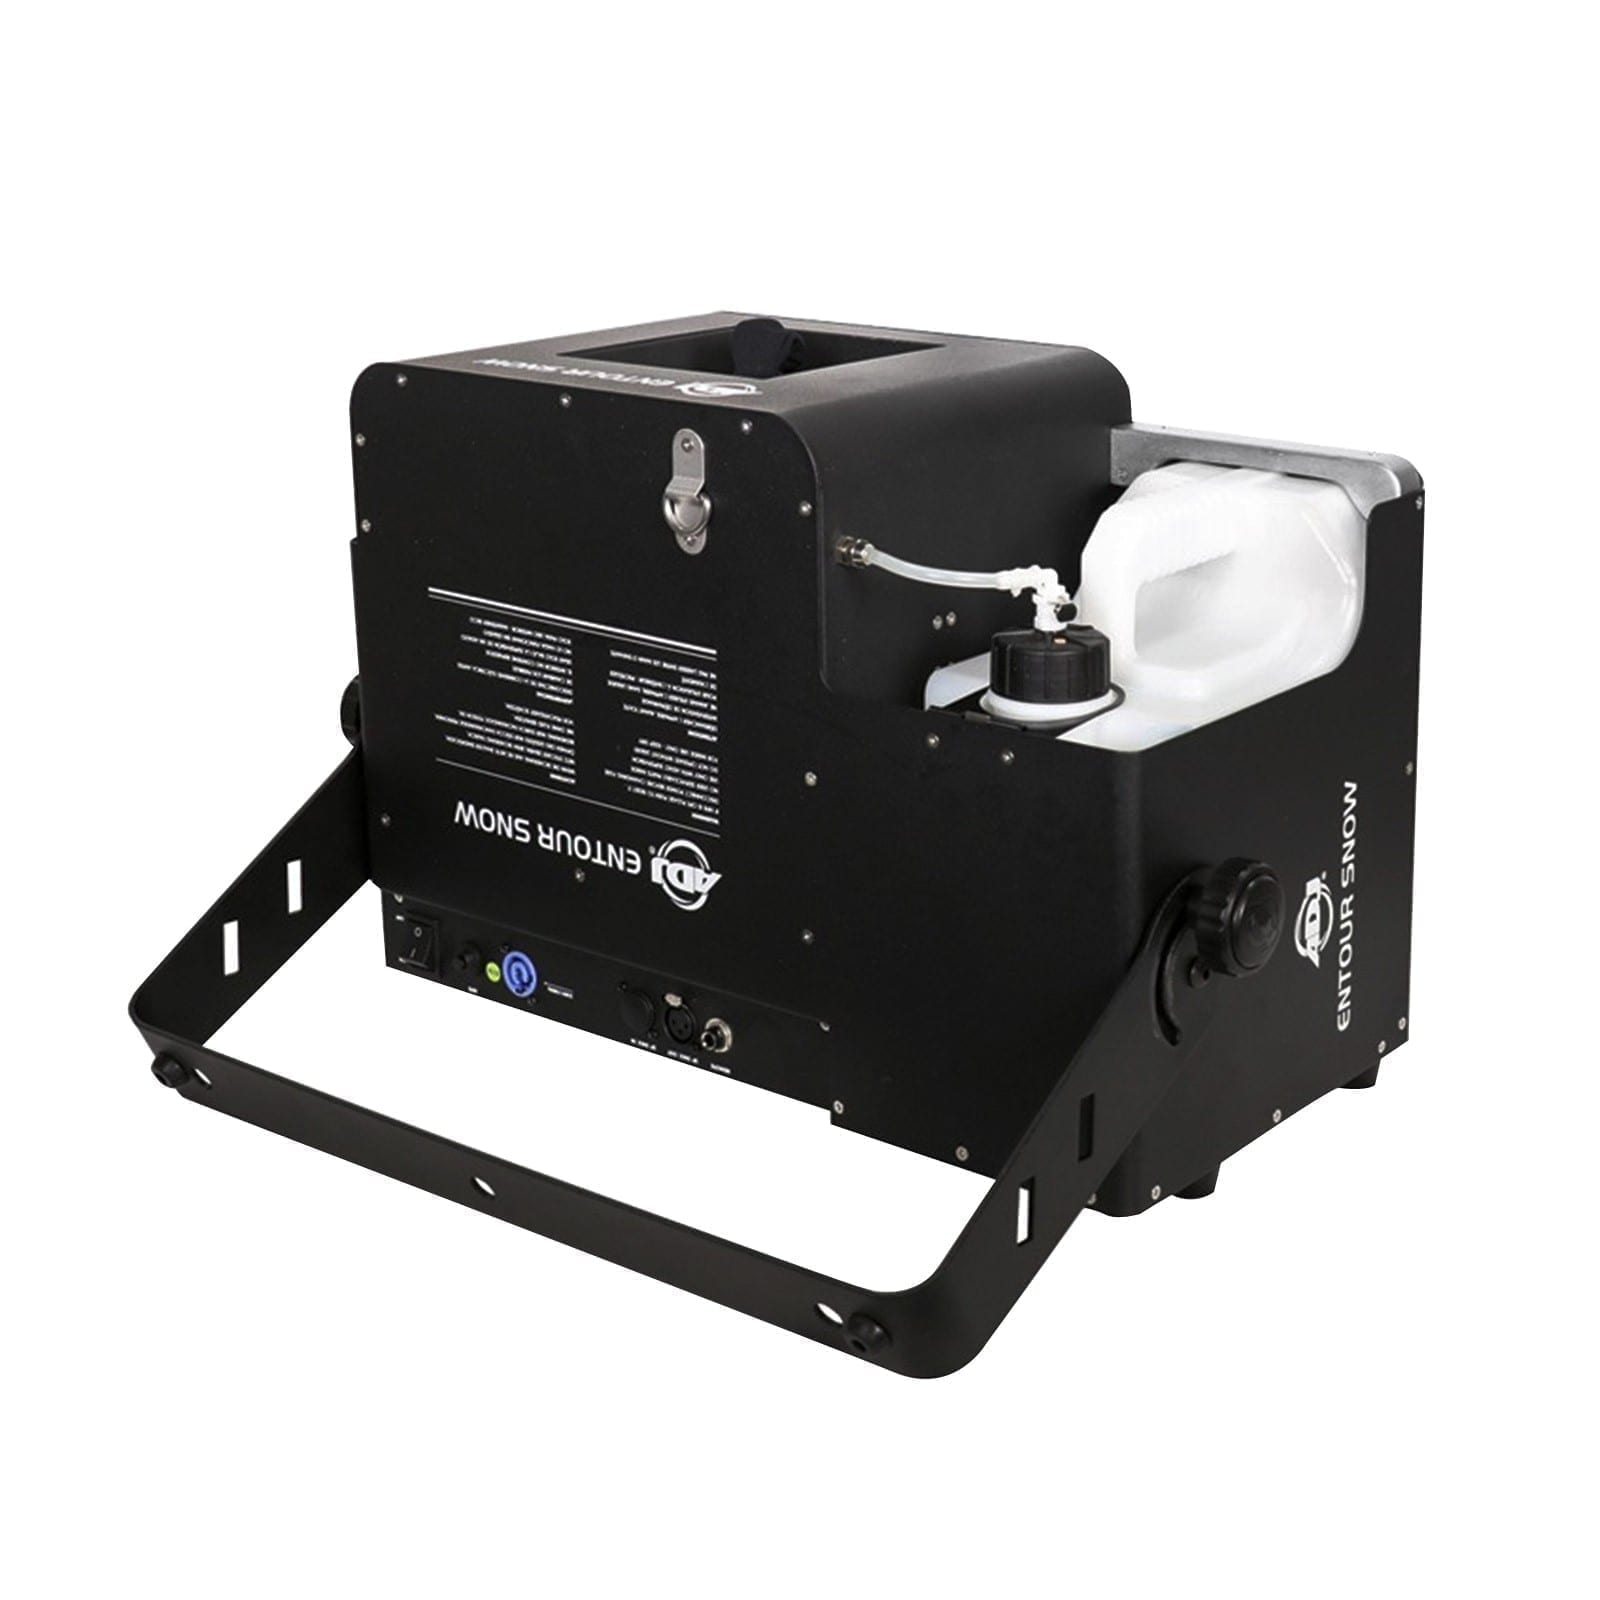 american-dj-entour-snow-professional-high-powered-snow-machine-16d